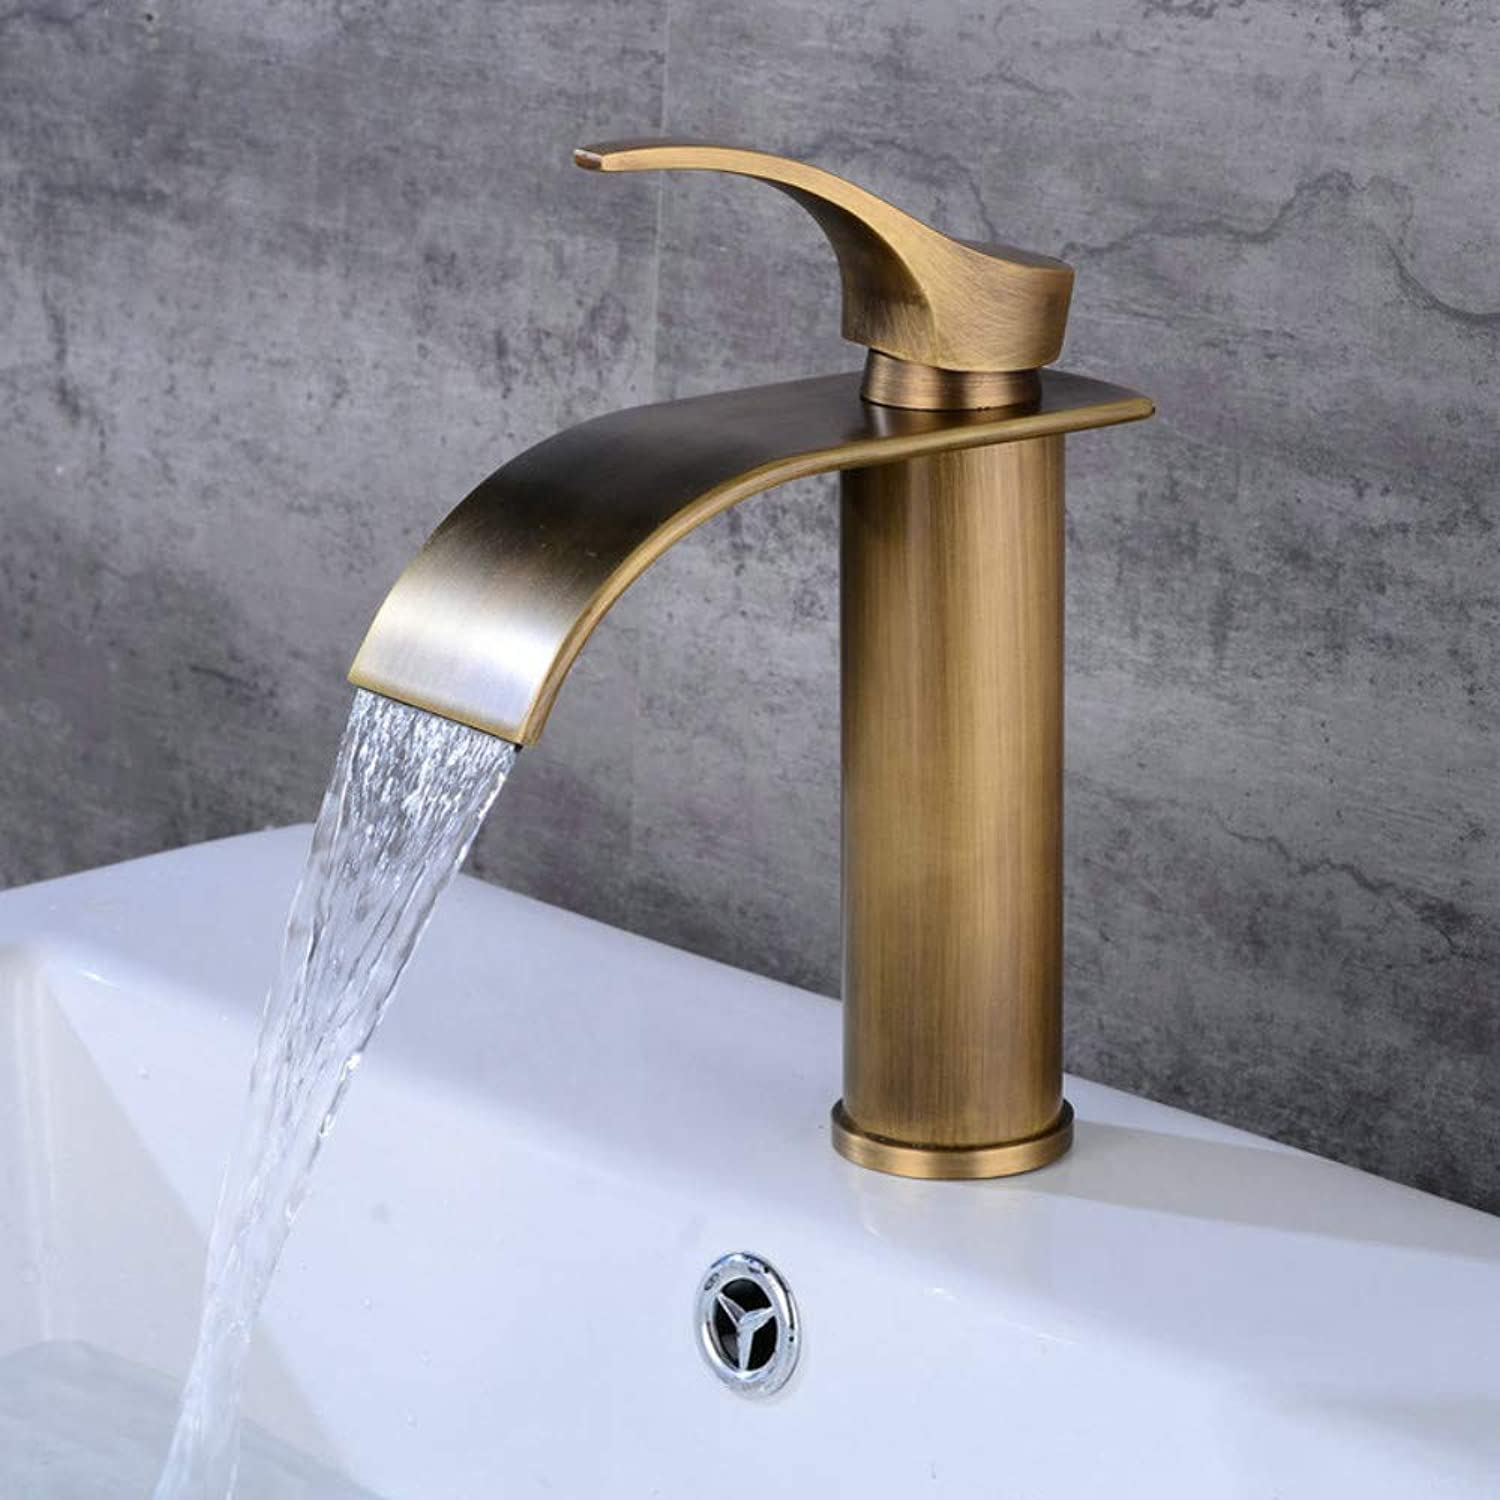 Kitchen Sink Taps Bathroom Sink Taps Washbasin Faucet Faucet Single Hole Hot And Cold Bathroom Wash Basin Lavatory Faucet